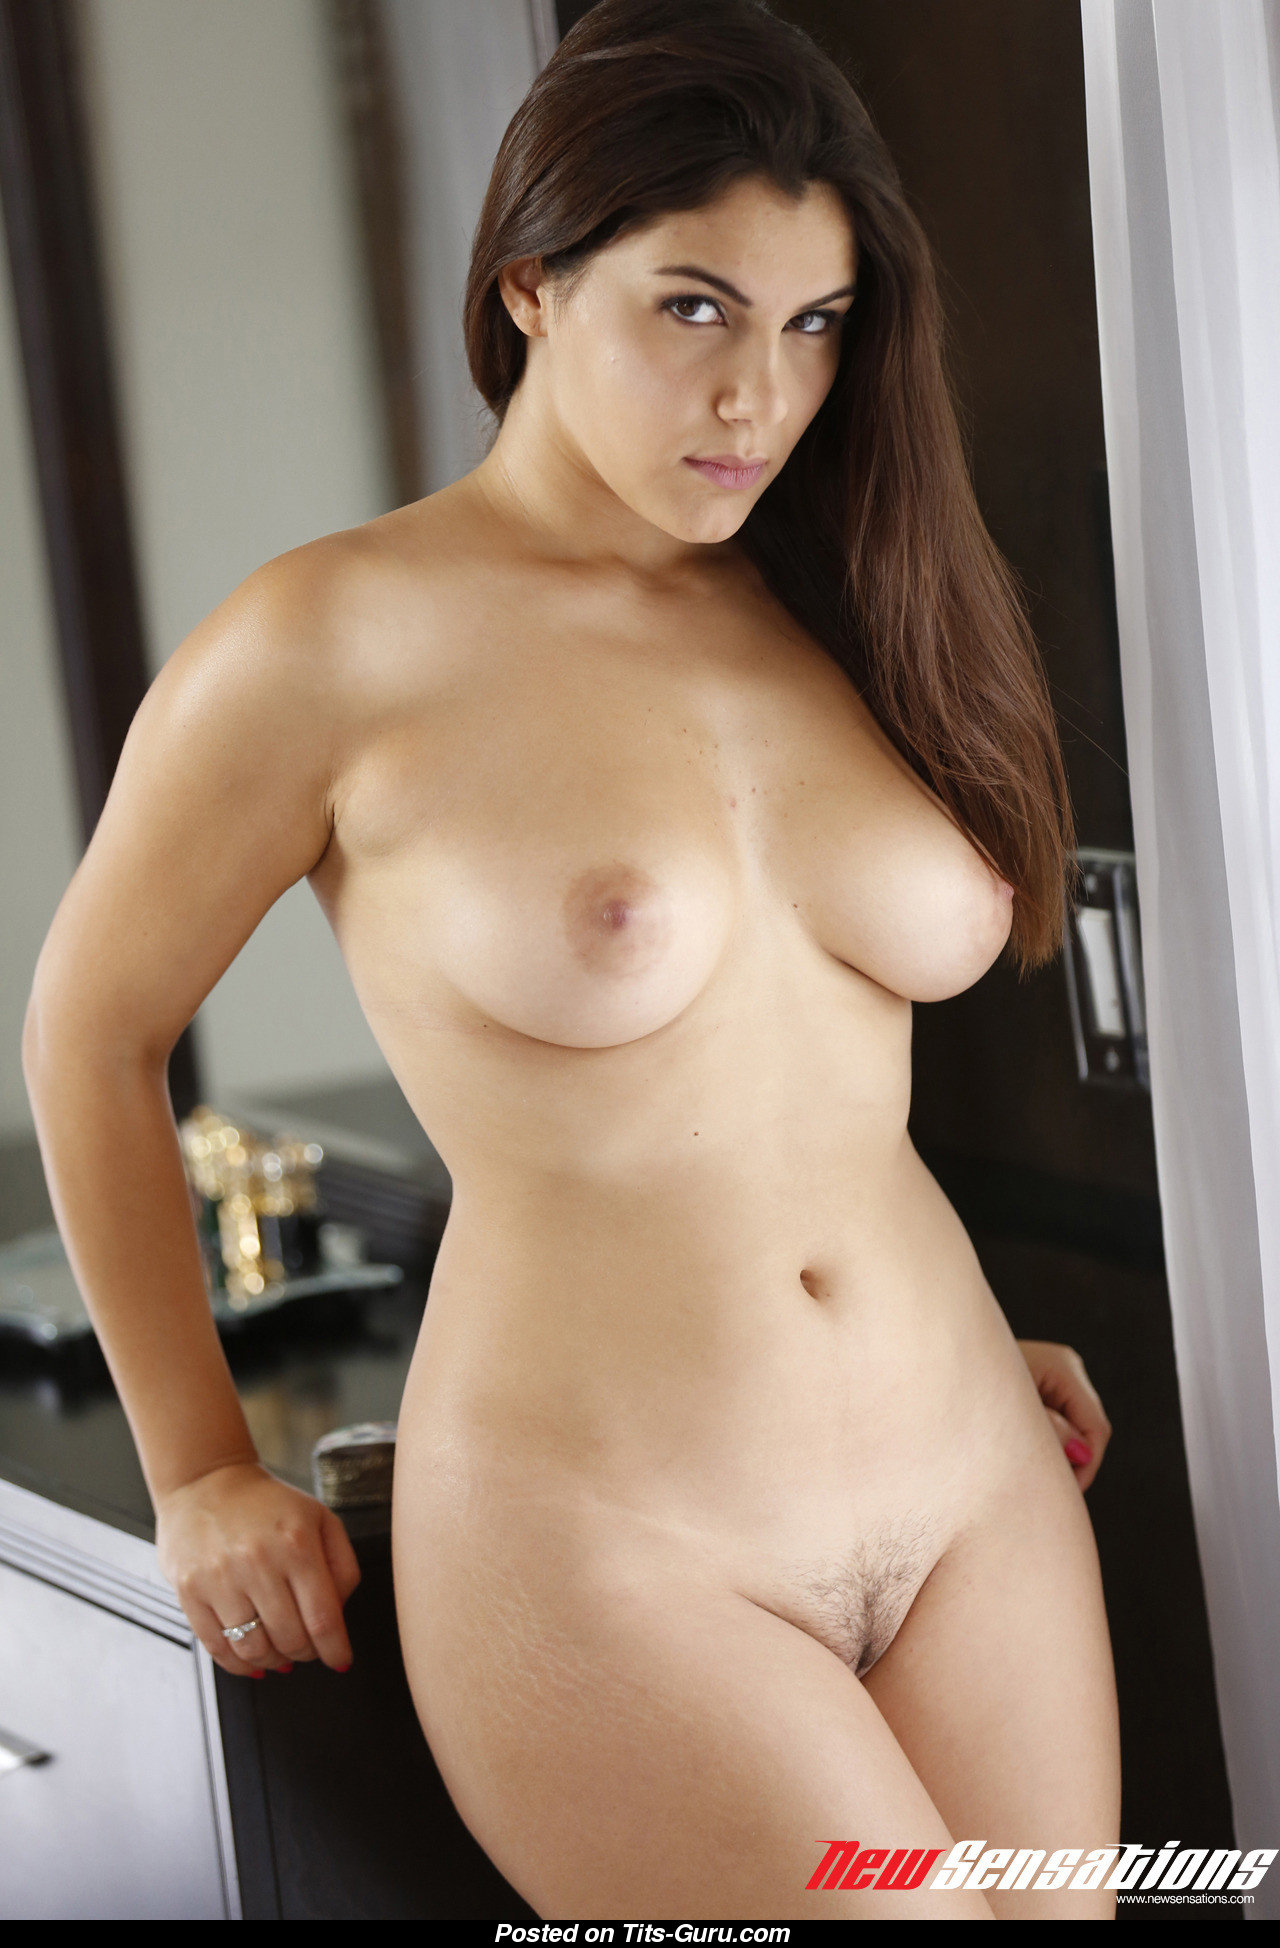 Valentina nappi nude were visited